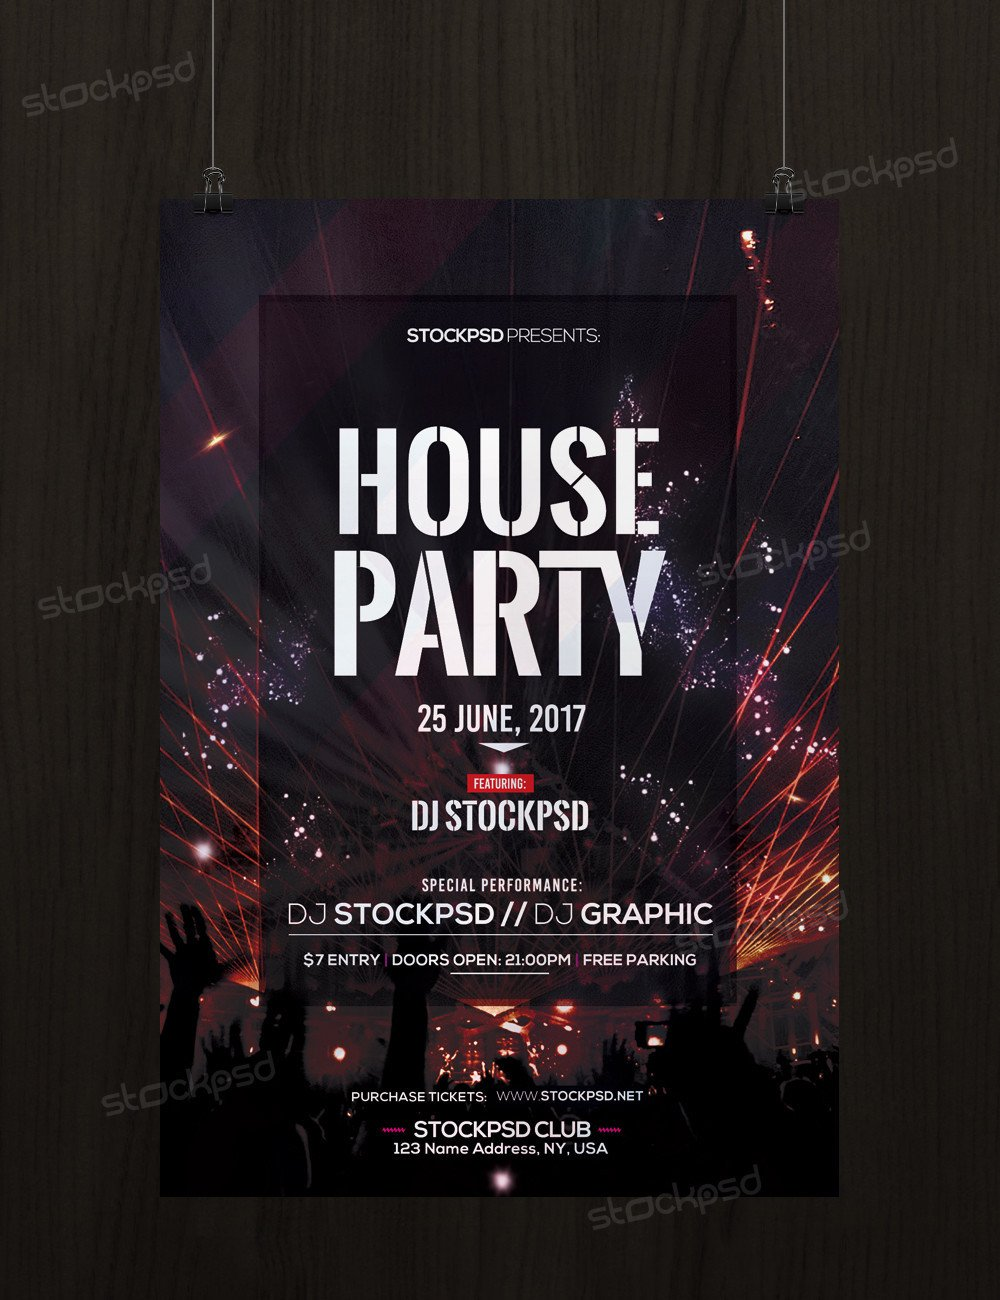 Free Party Flyer Templates 98 Premium & Free Flyer Templates Psd Absolutely Free to